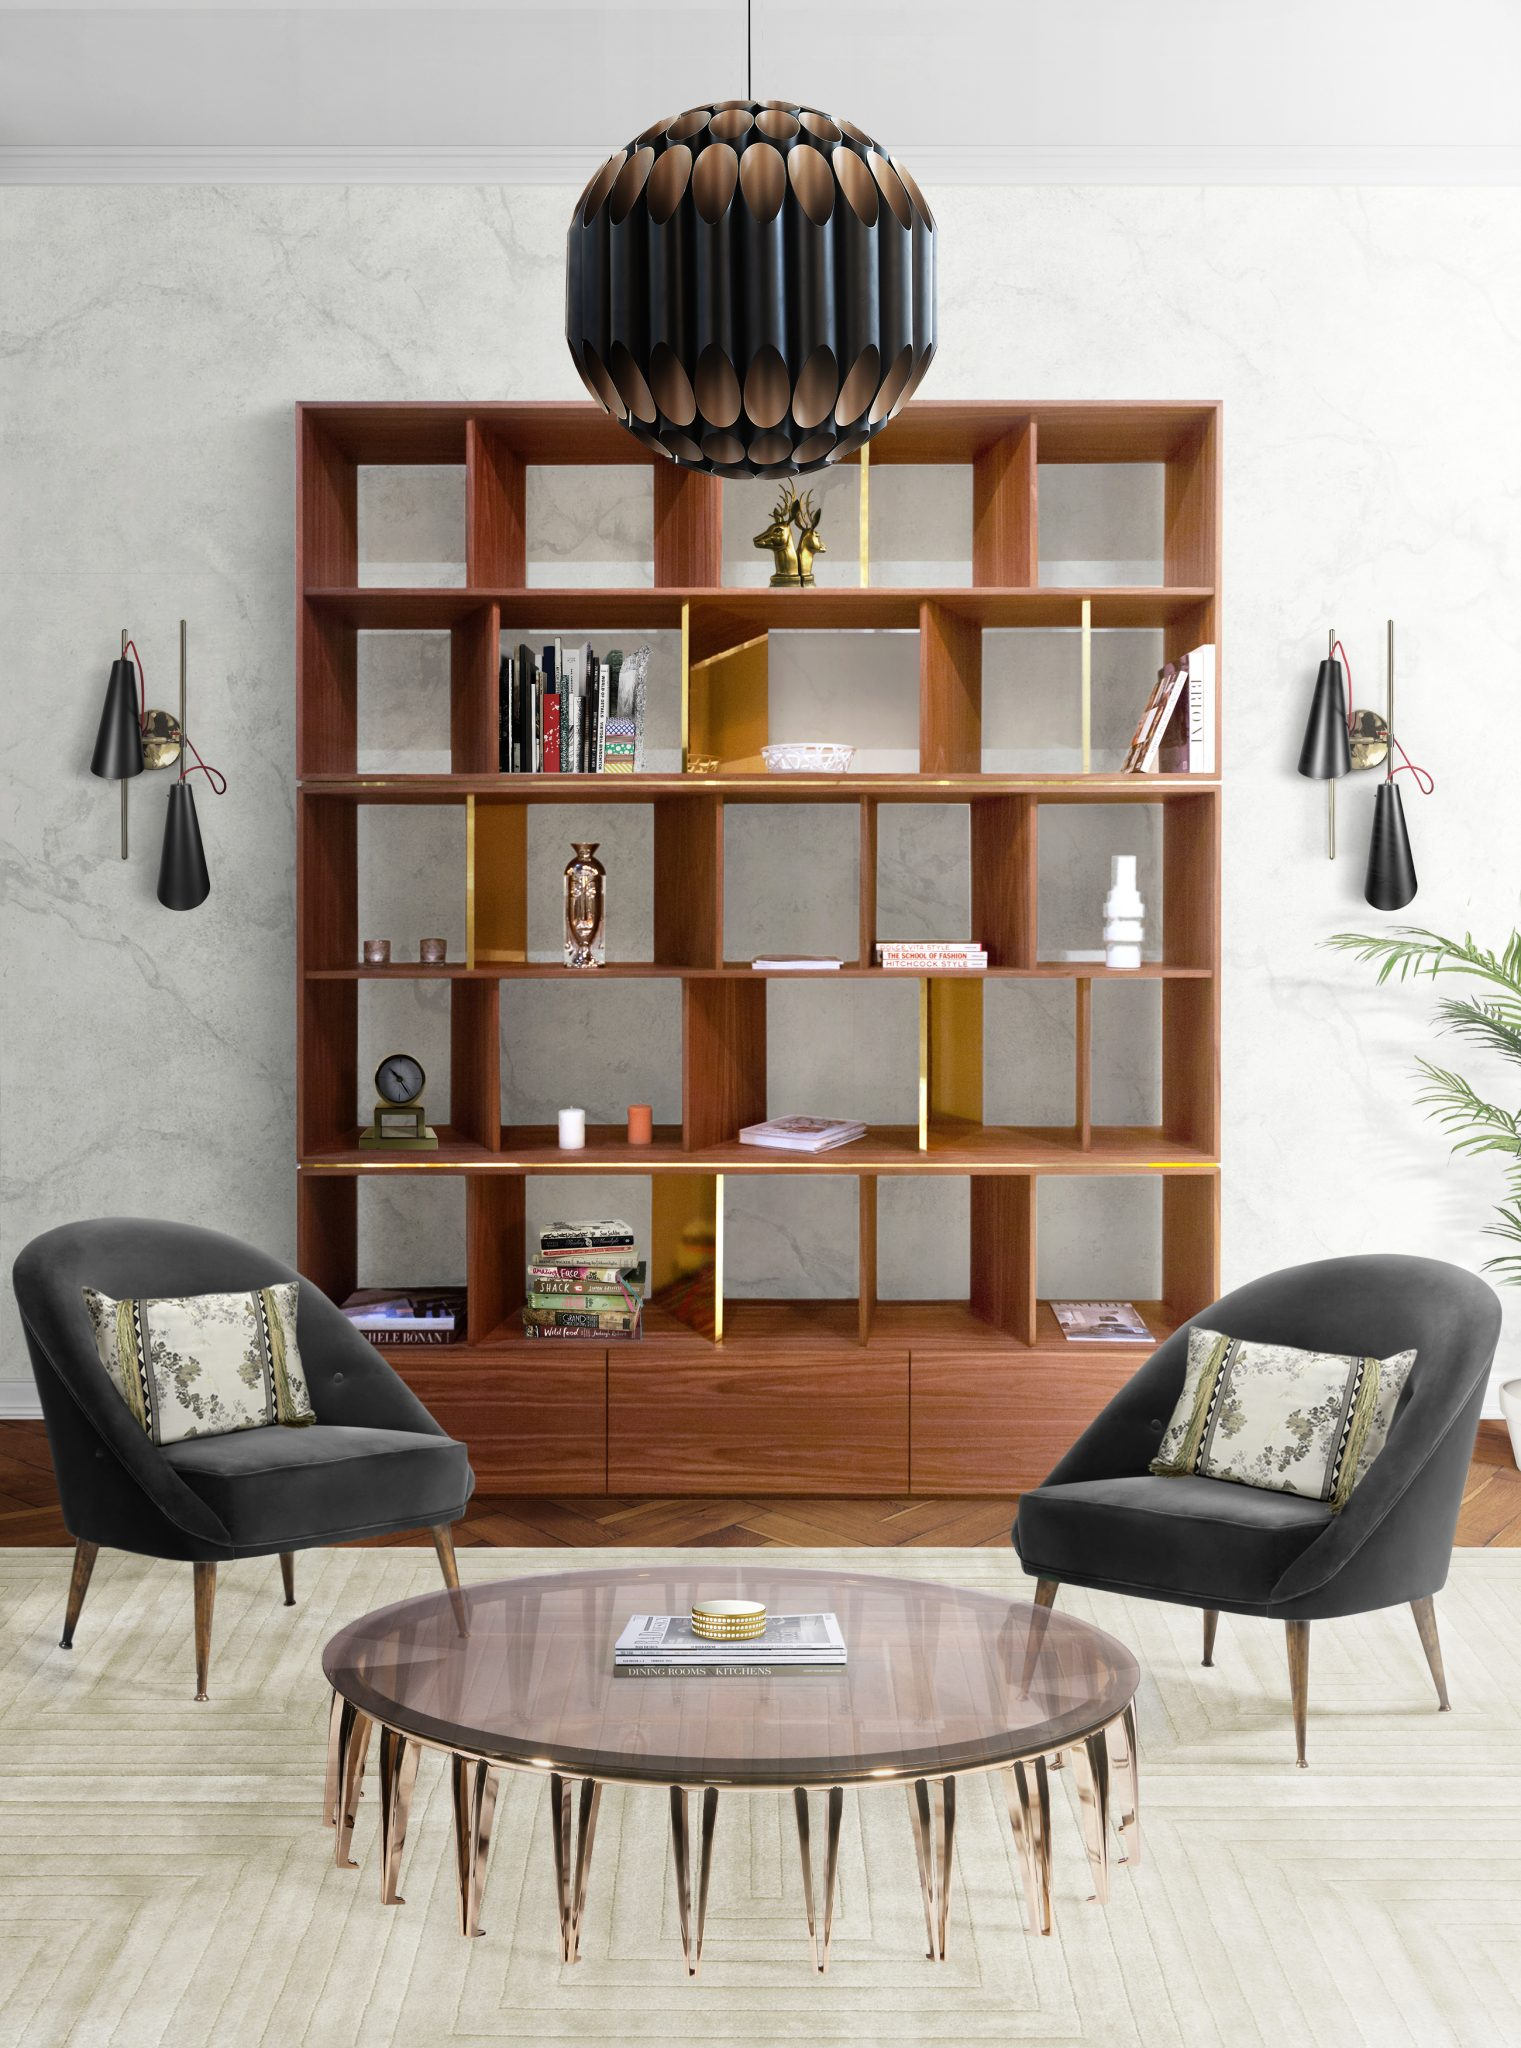 MID-CENTURY MODERN LIVING ROOM WITH KAVRITZ SUSPENSION AND EVANS WALL